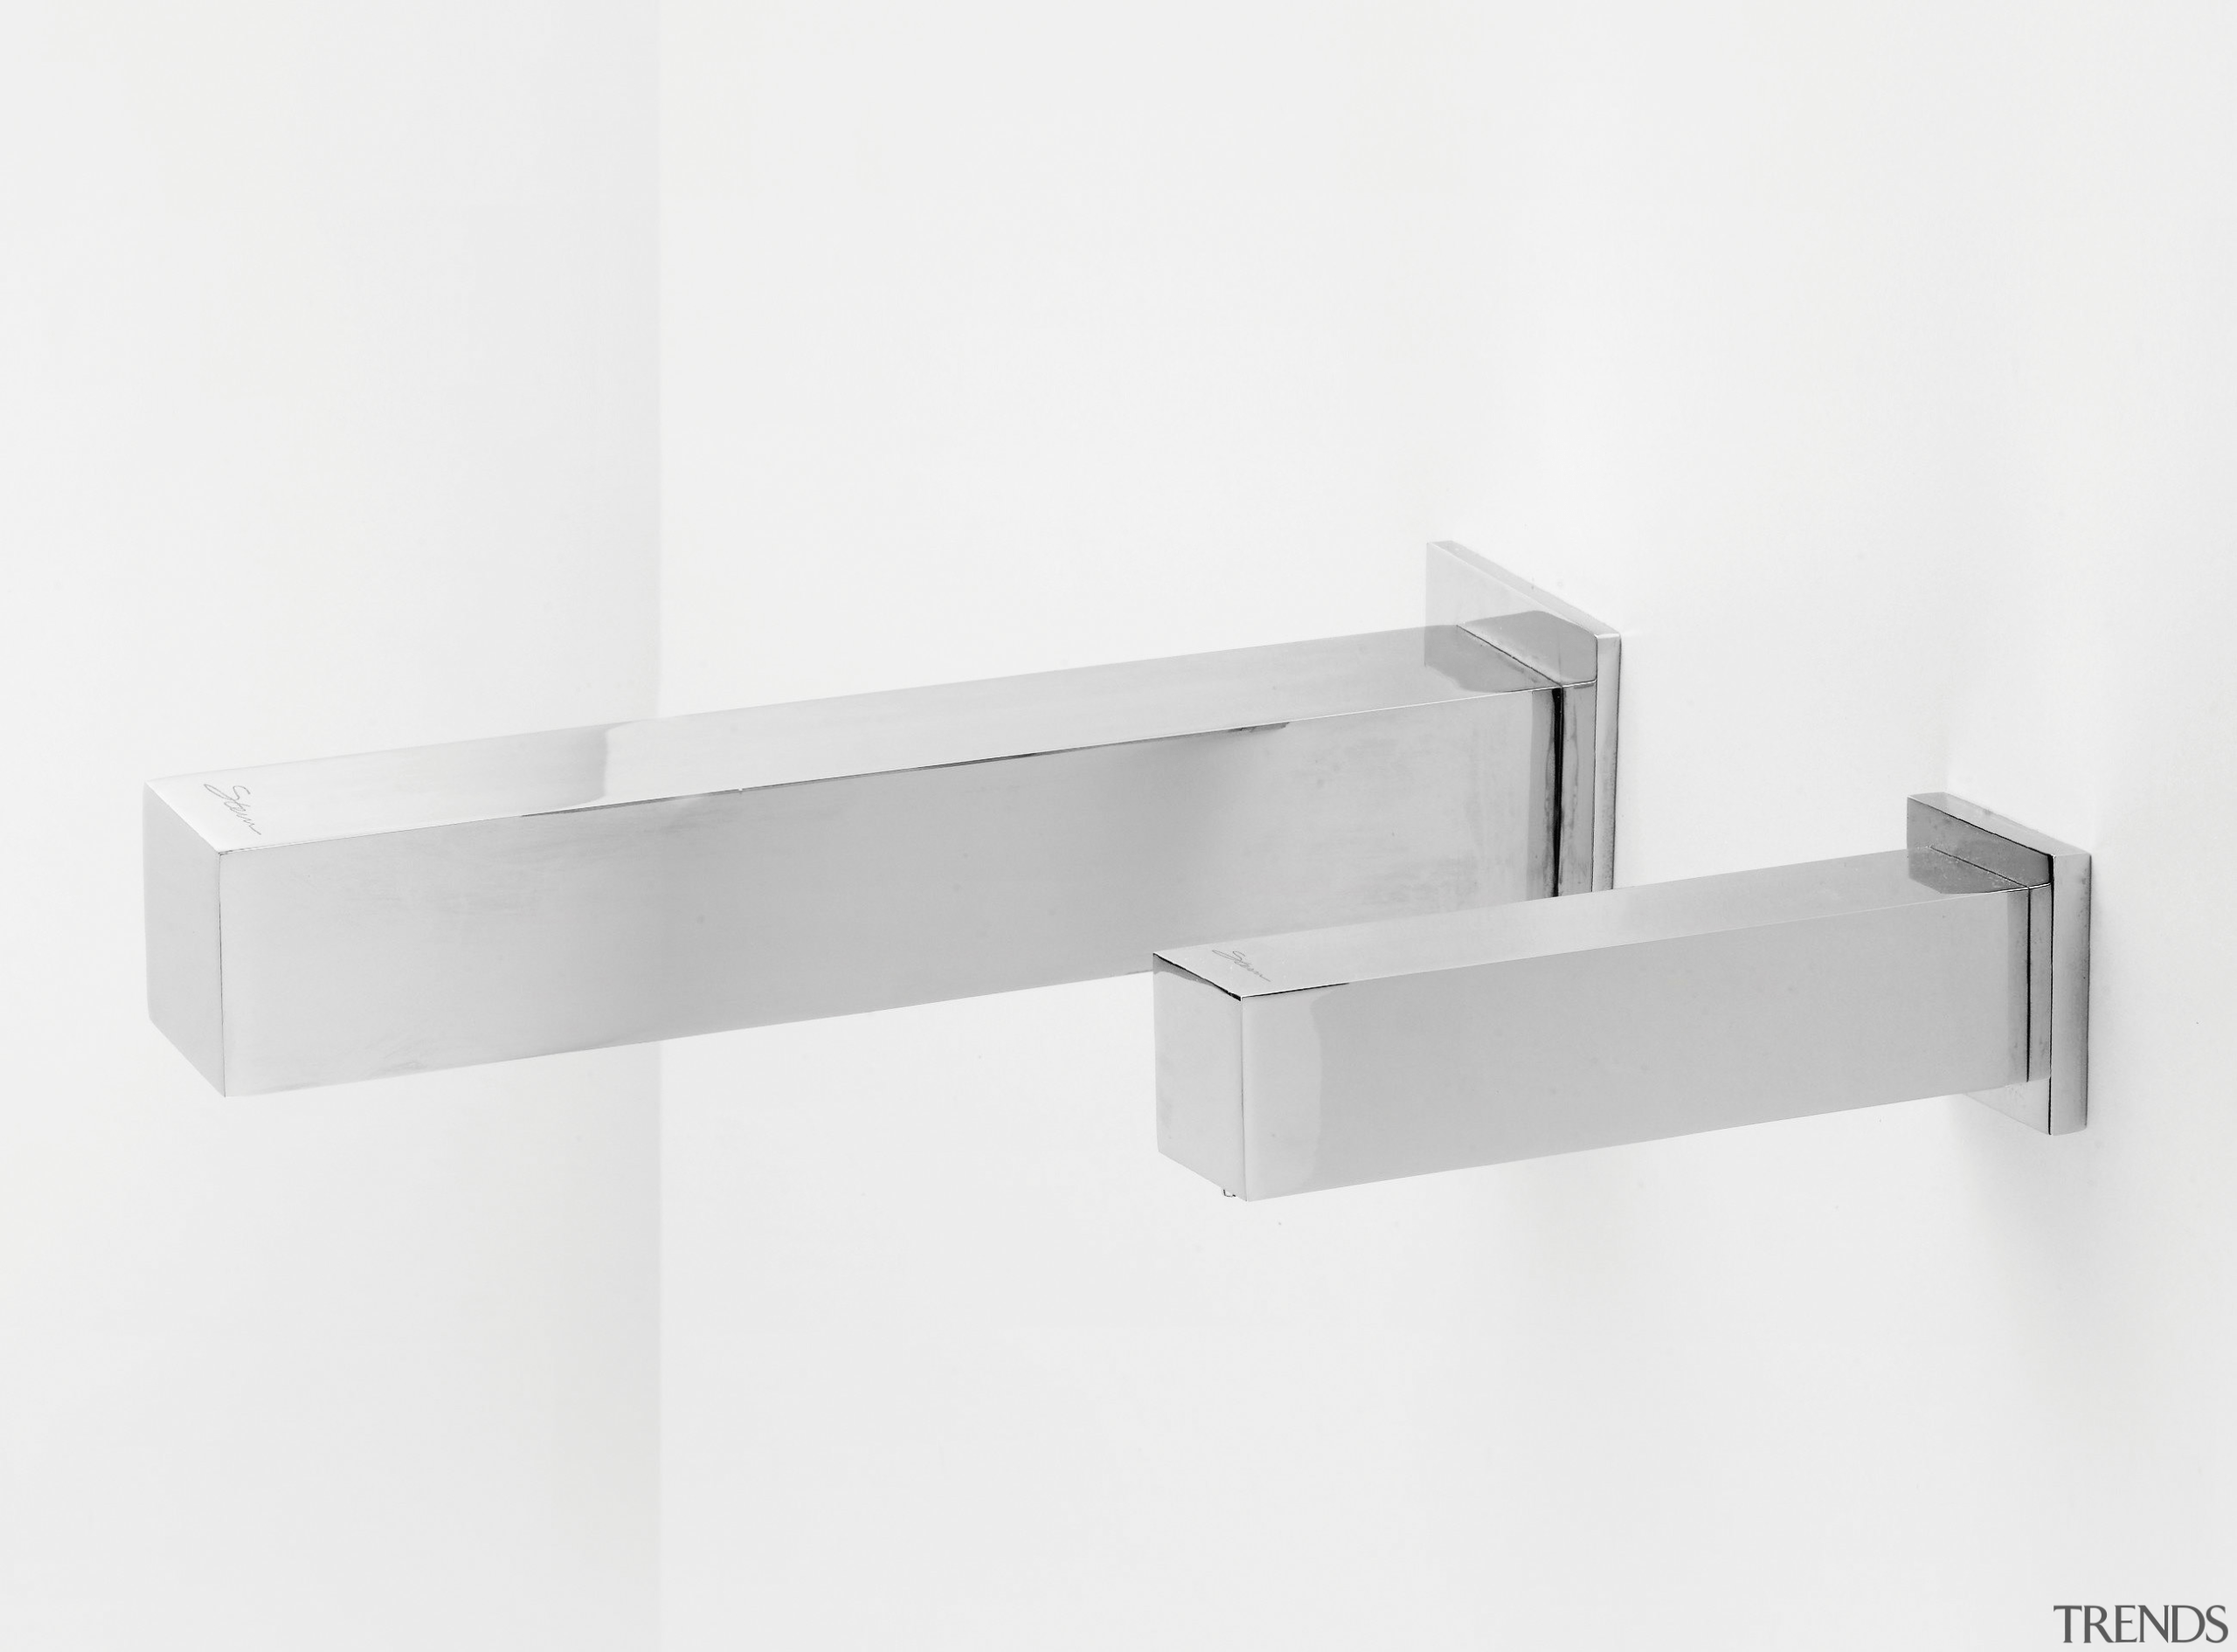 Zoom electronic faucets from Lacava automatically turn on angle, bathroom accessory, product design, shelf, white